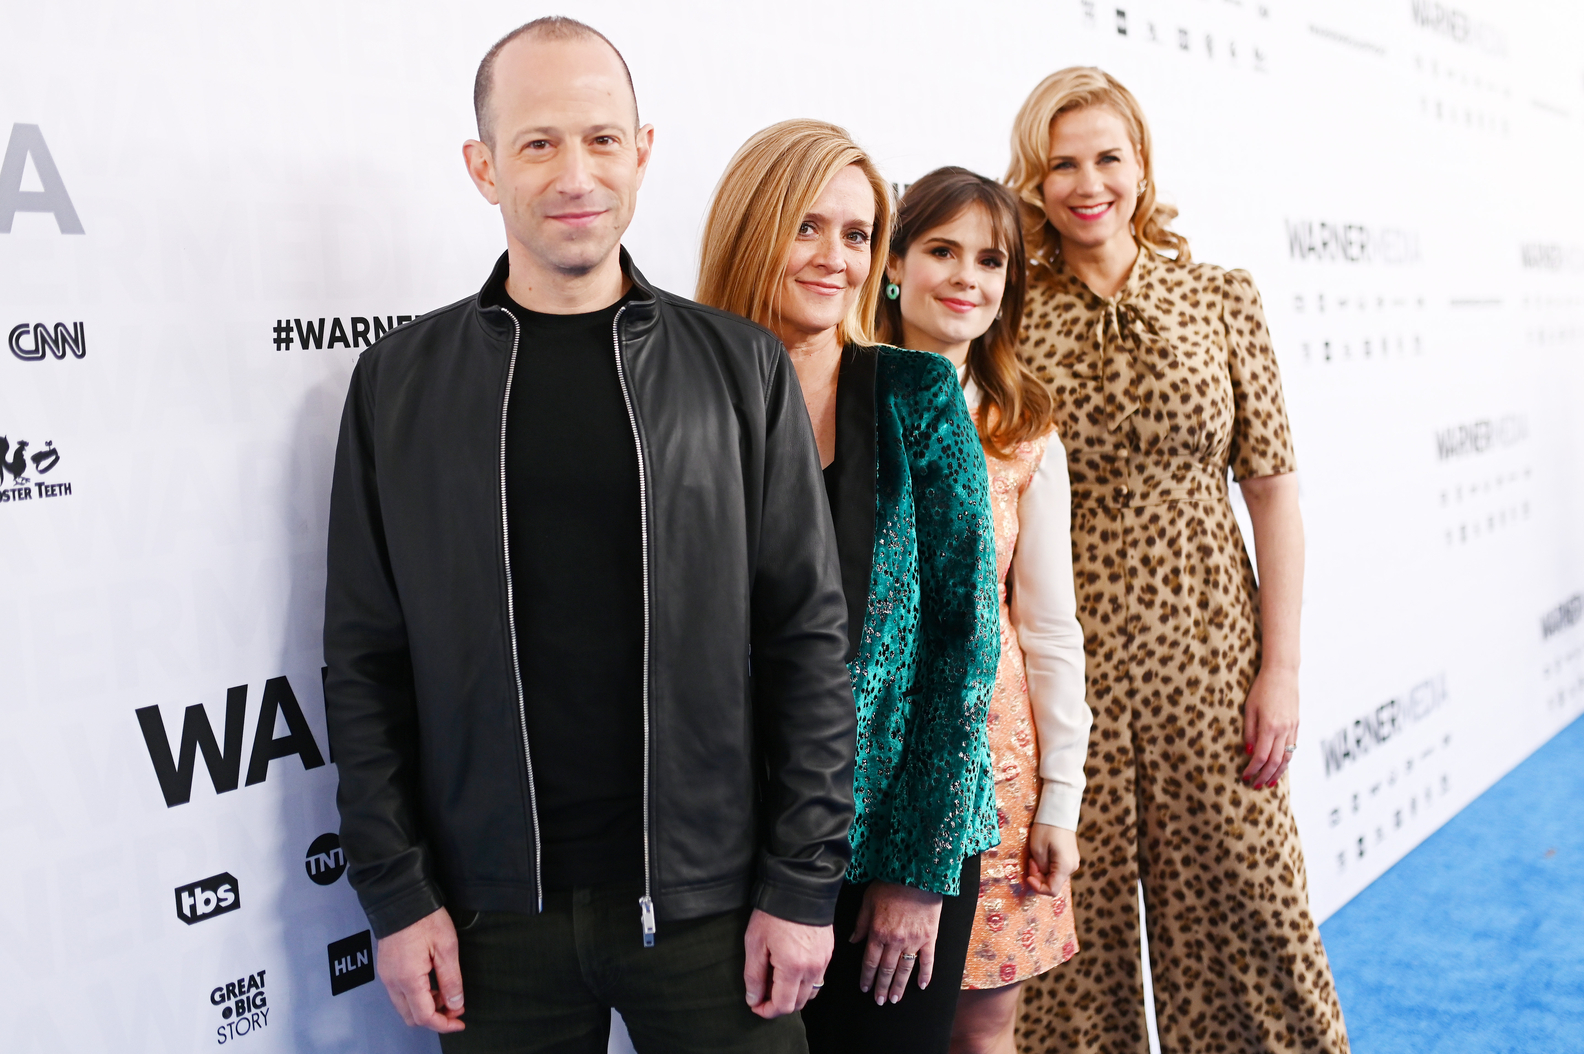 Mike Rubens, Samantha Bee, Amy Hoggart and Allana Harkin of TBS'sFull Frontal with Samantha Beeon the red carpet at WarnerMedia Upfront 2019 at The Theater at Madison Square Garden on May 15, 2019 in New York City.